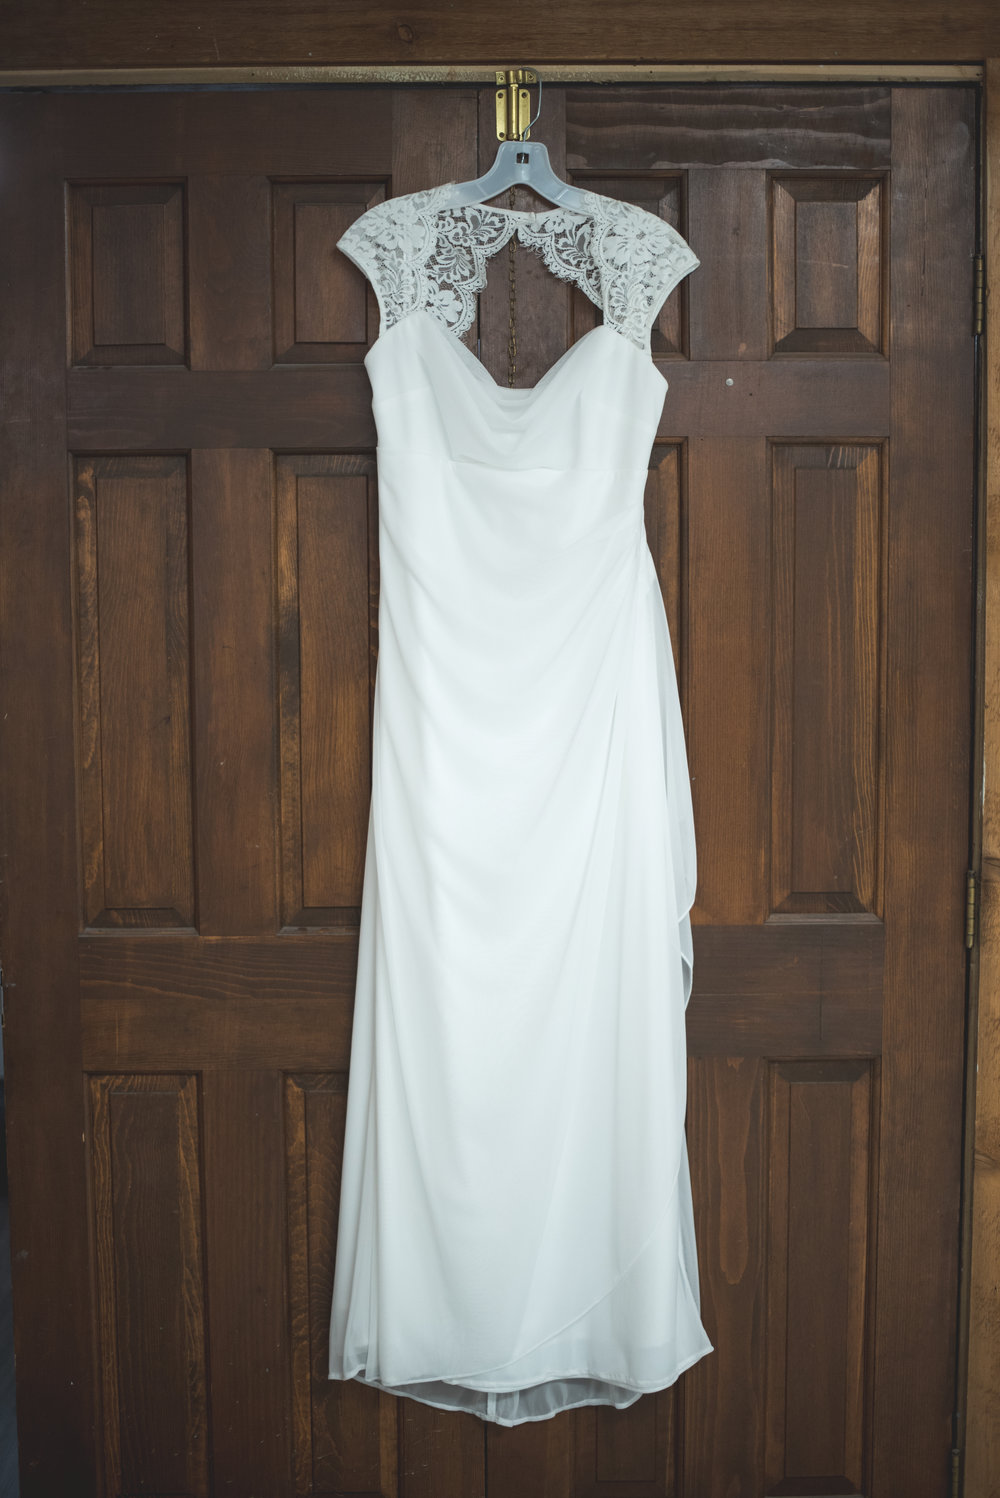 wedding dress gown david's bridal columbus ohio photographer